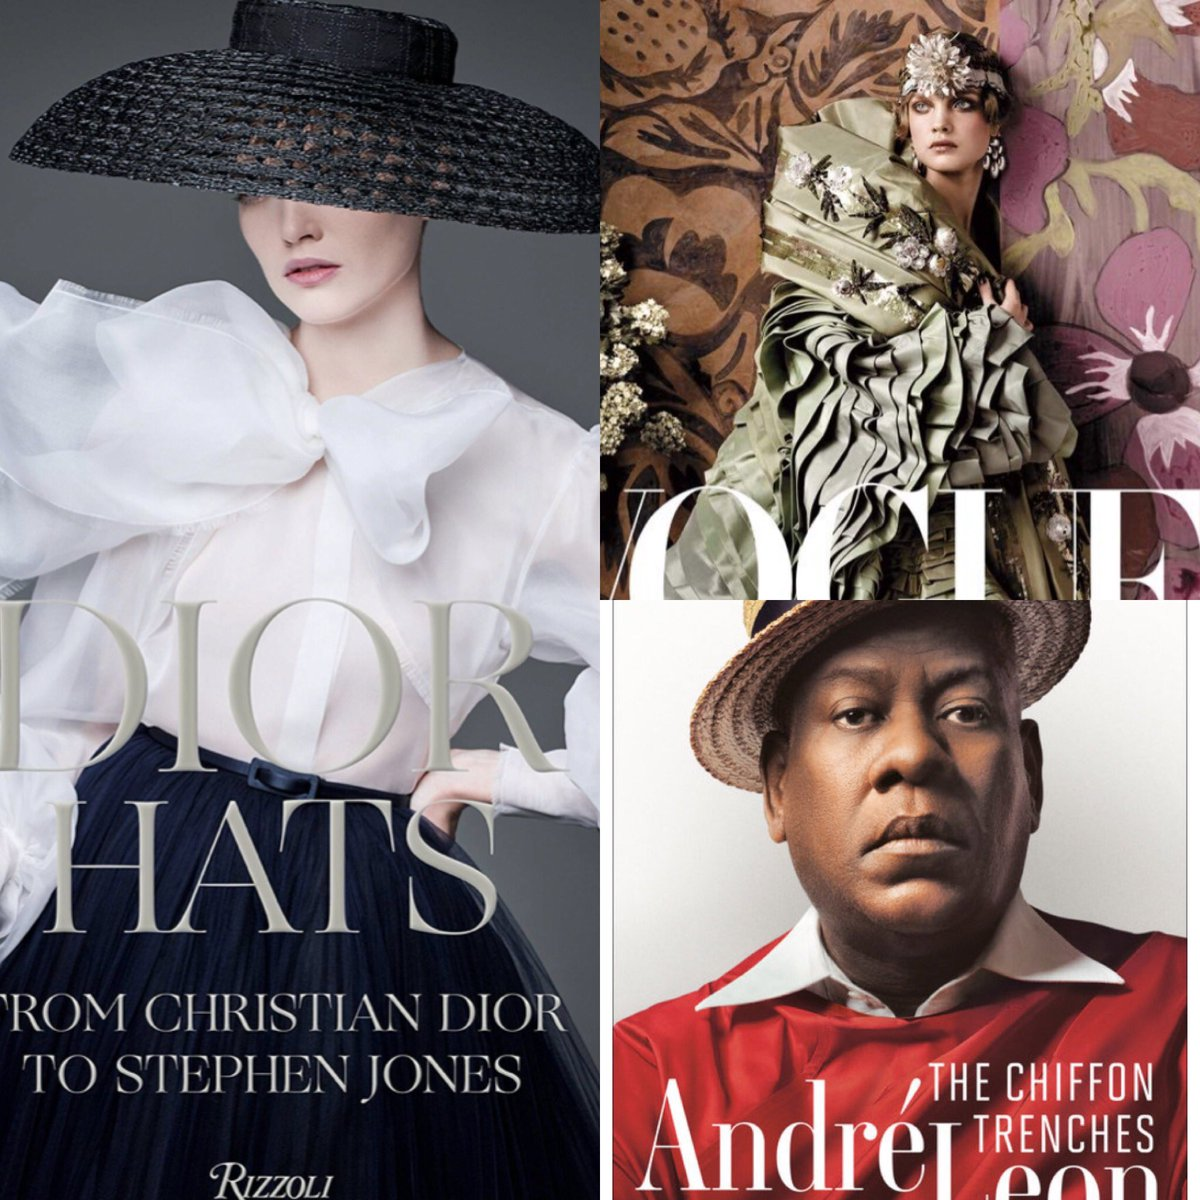 My latest blog post features a selection of fashion books published or to be published in 2020. Memoirs are definitely trendy! Link in bio. 👩🏻💻📚❤️ #FashionPhotography #fashionblogger #memoirs #magazines #Dior #Vogue #metgala #met #bloggerstribe #books https://t.co/tFXoNMSOpK